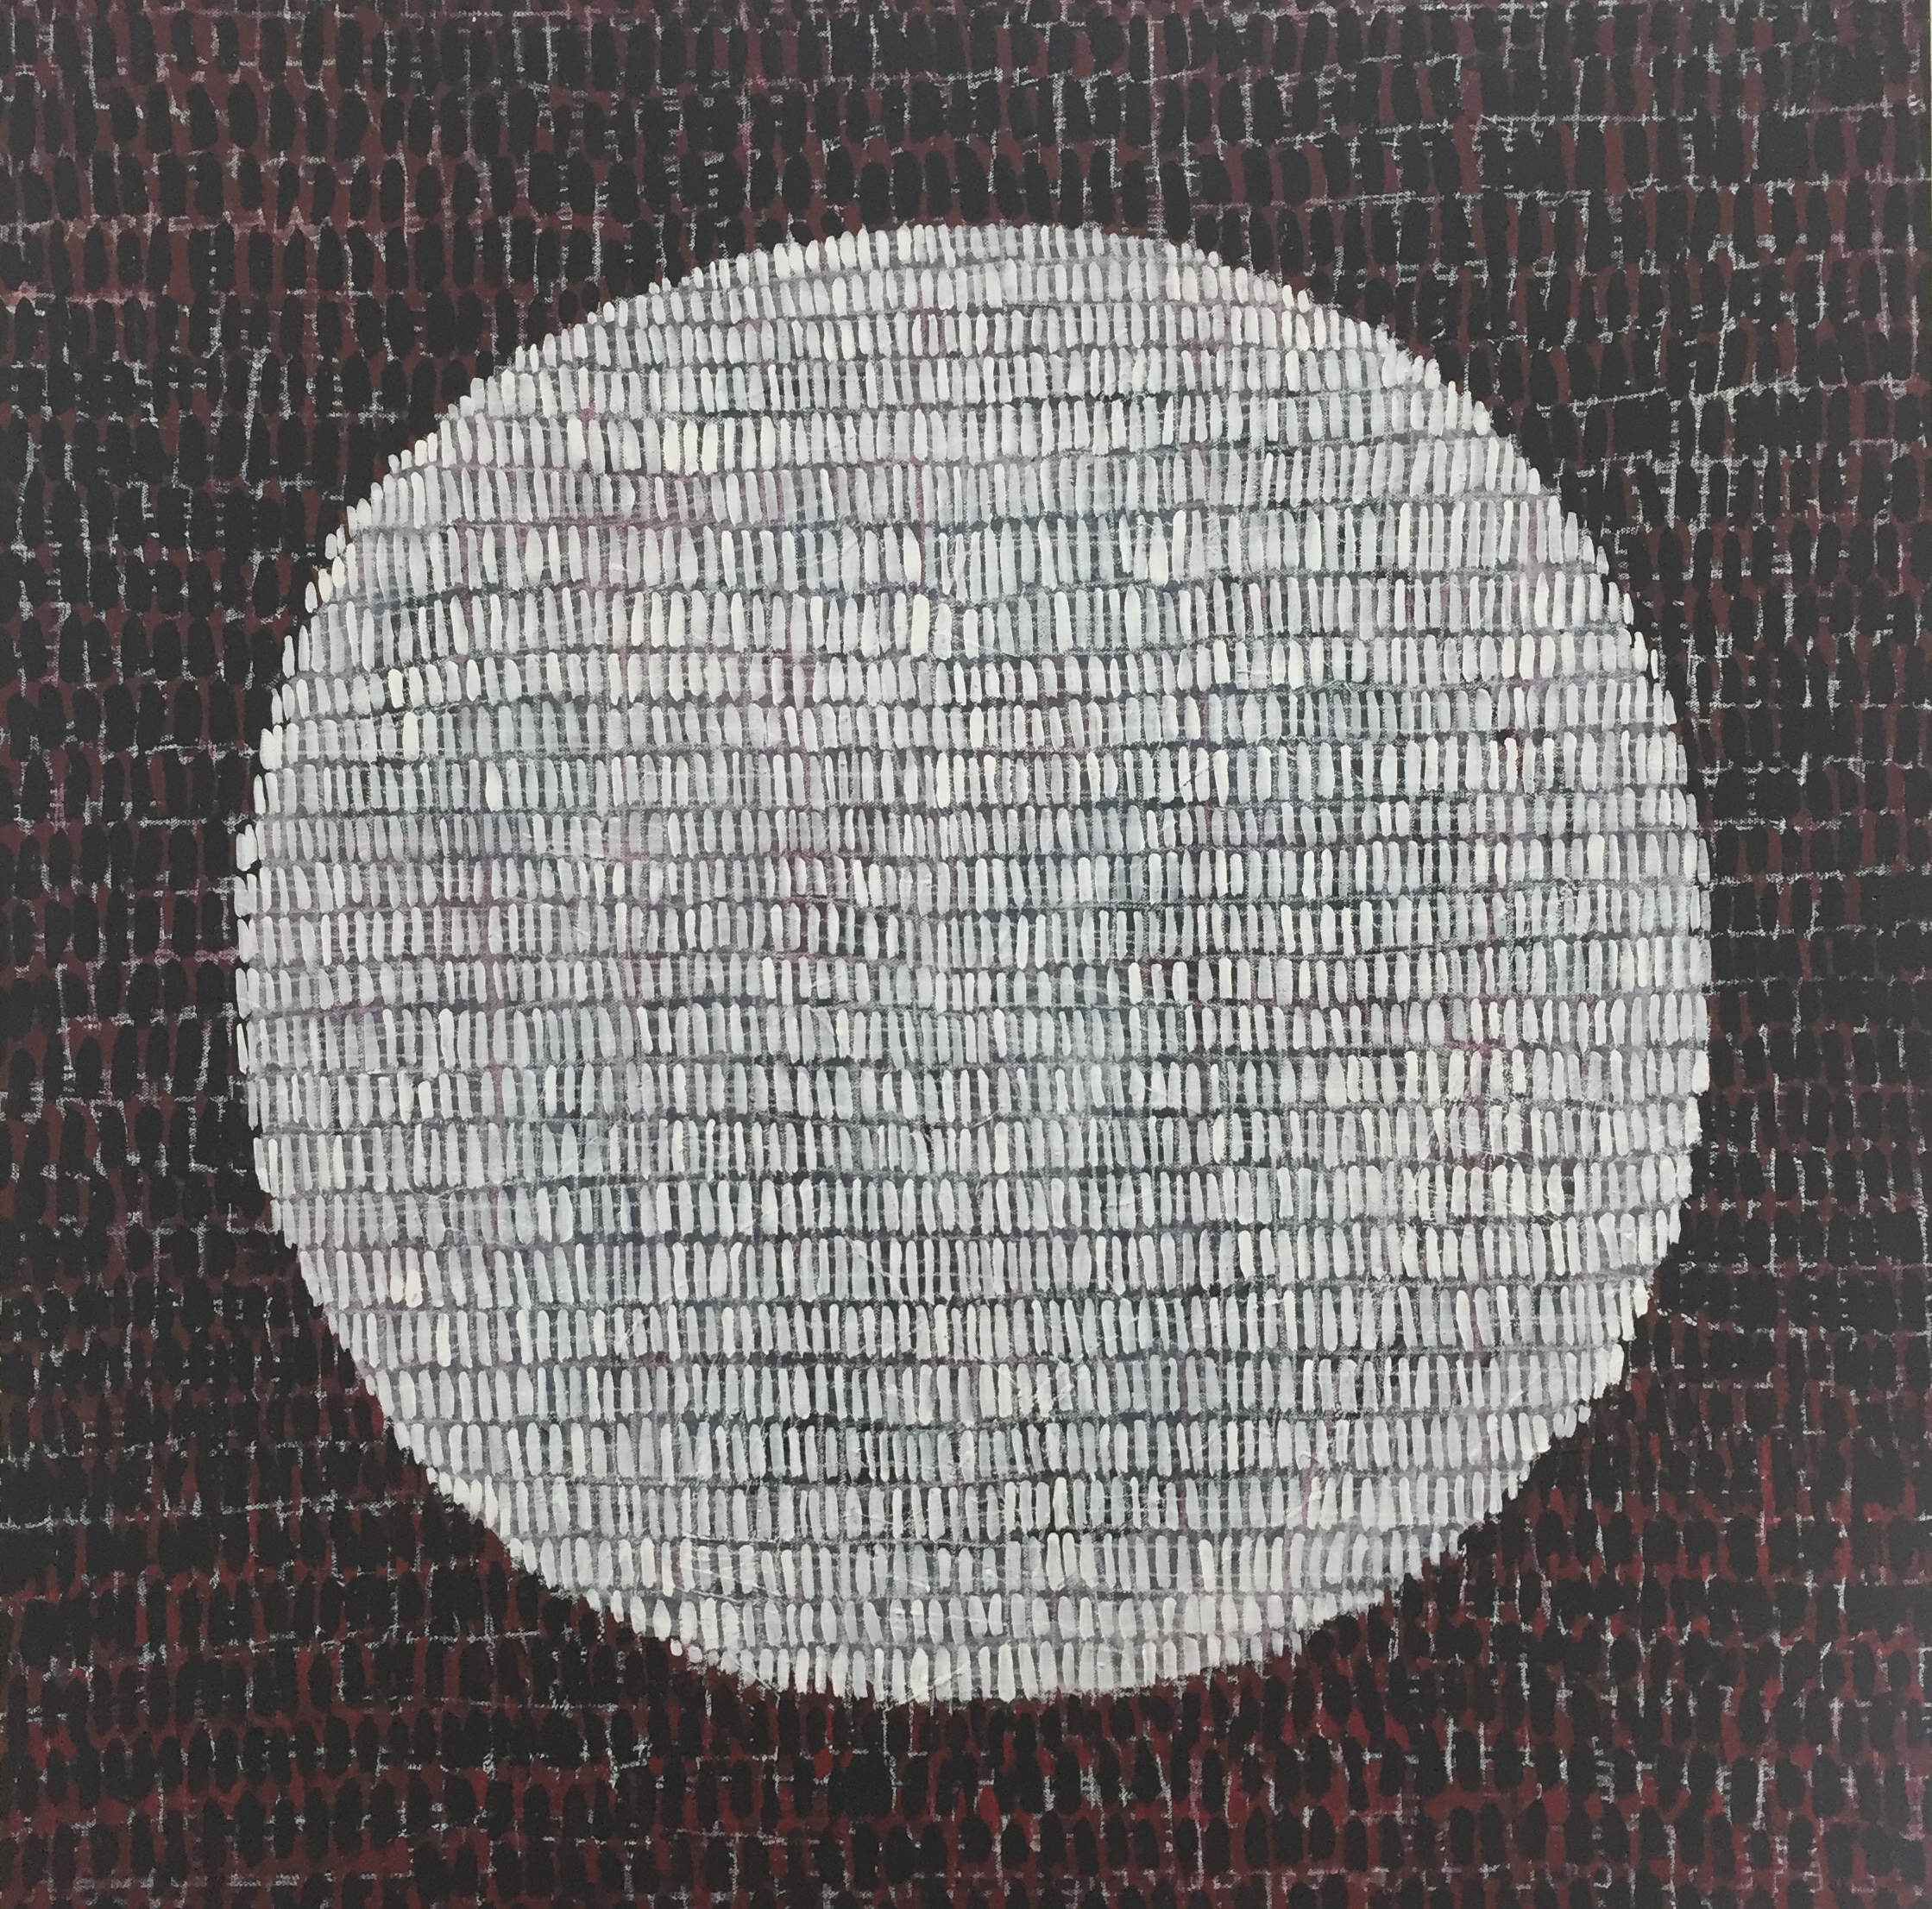 Caelli Jo Brooker_Full Moon (Blood) 2018_acrylic, ink, crayon on canvas and board_90 x90cm_$540.00.JPG